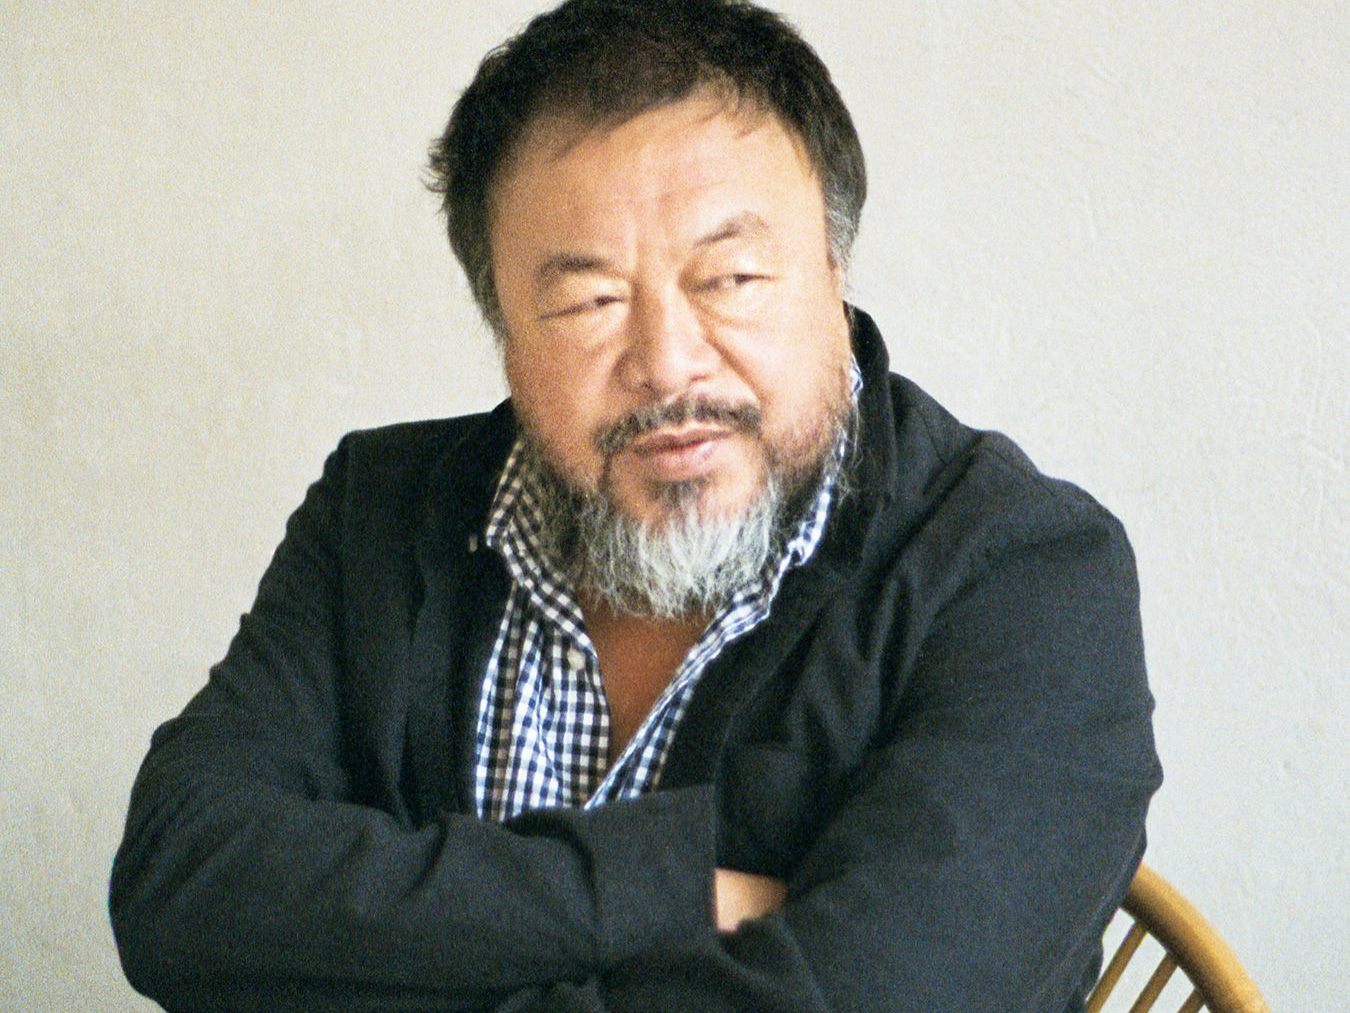 ai weiwei essay In 1993, ai weiwei then had moved to the north side of china in a town called coachanghdi, this is where he started to do architectural work, including his studio house this is when he founded the fake design, which is an architectural studio.